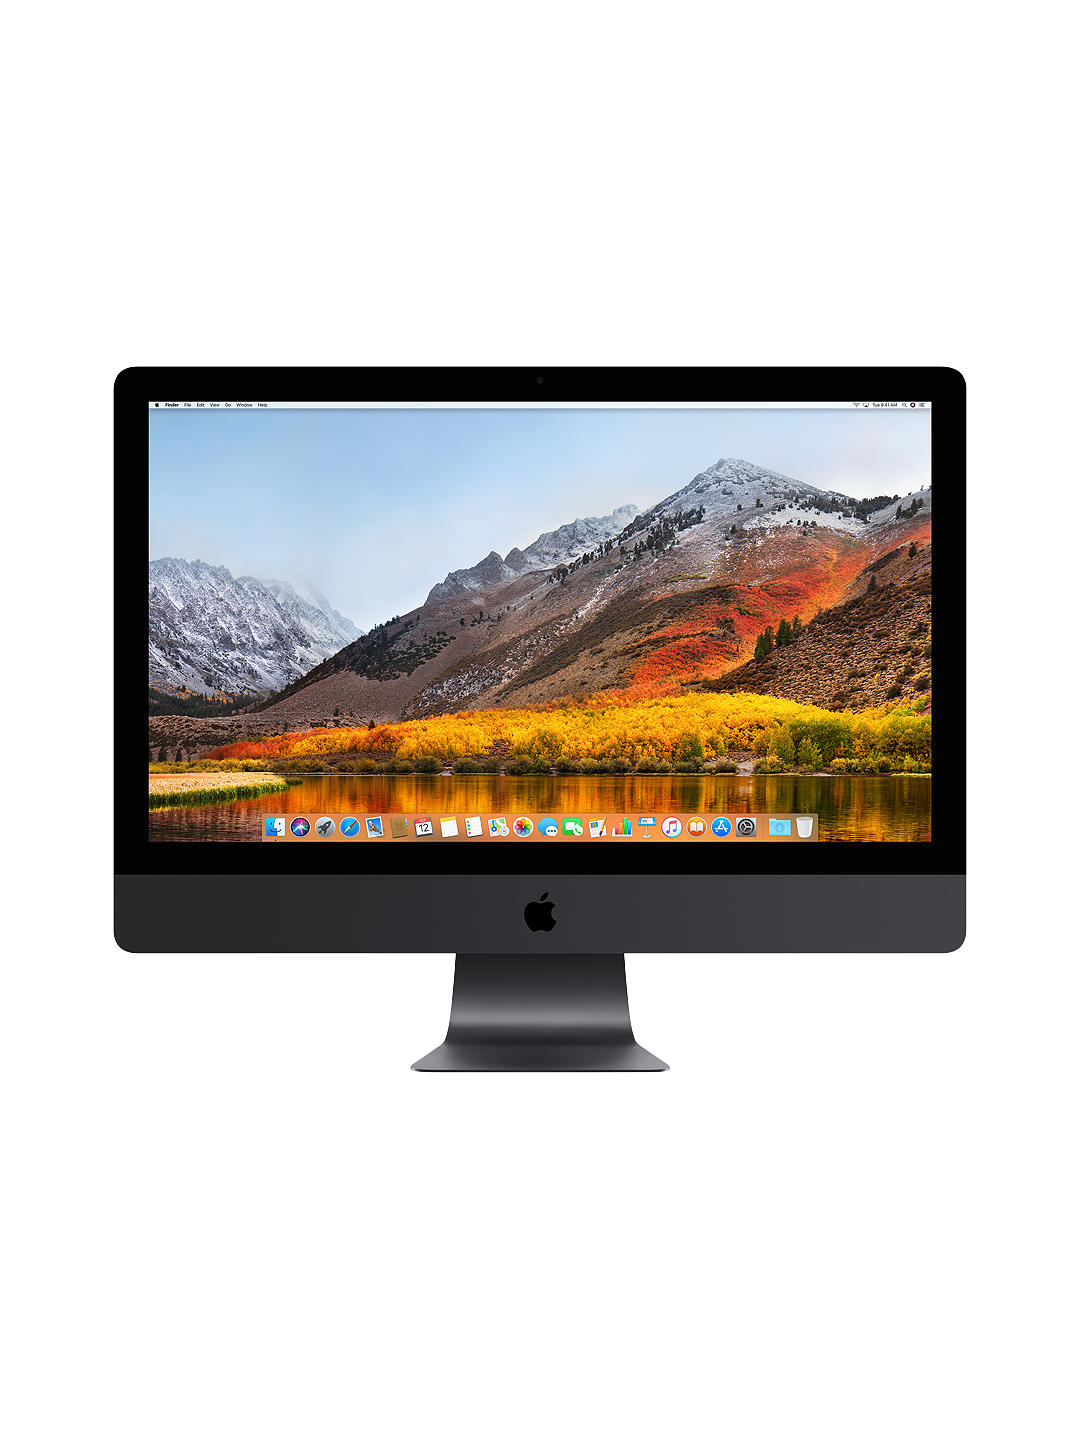 "Apple iMac Pro 27"" - 8-Core i5 3.0GHz, 128Gb RAM, 1Tb SSD, Radeon Pro Vega 64 with with 16GB Image"